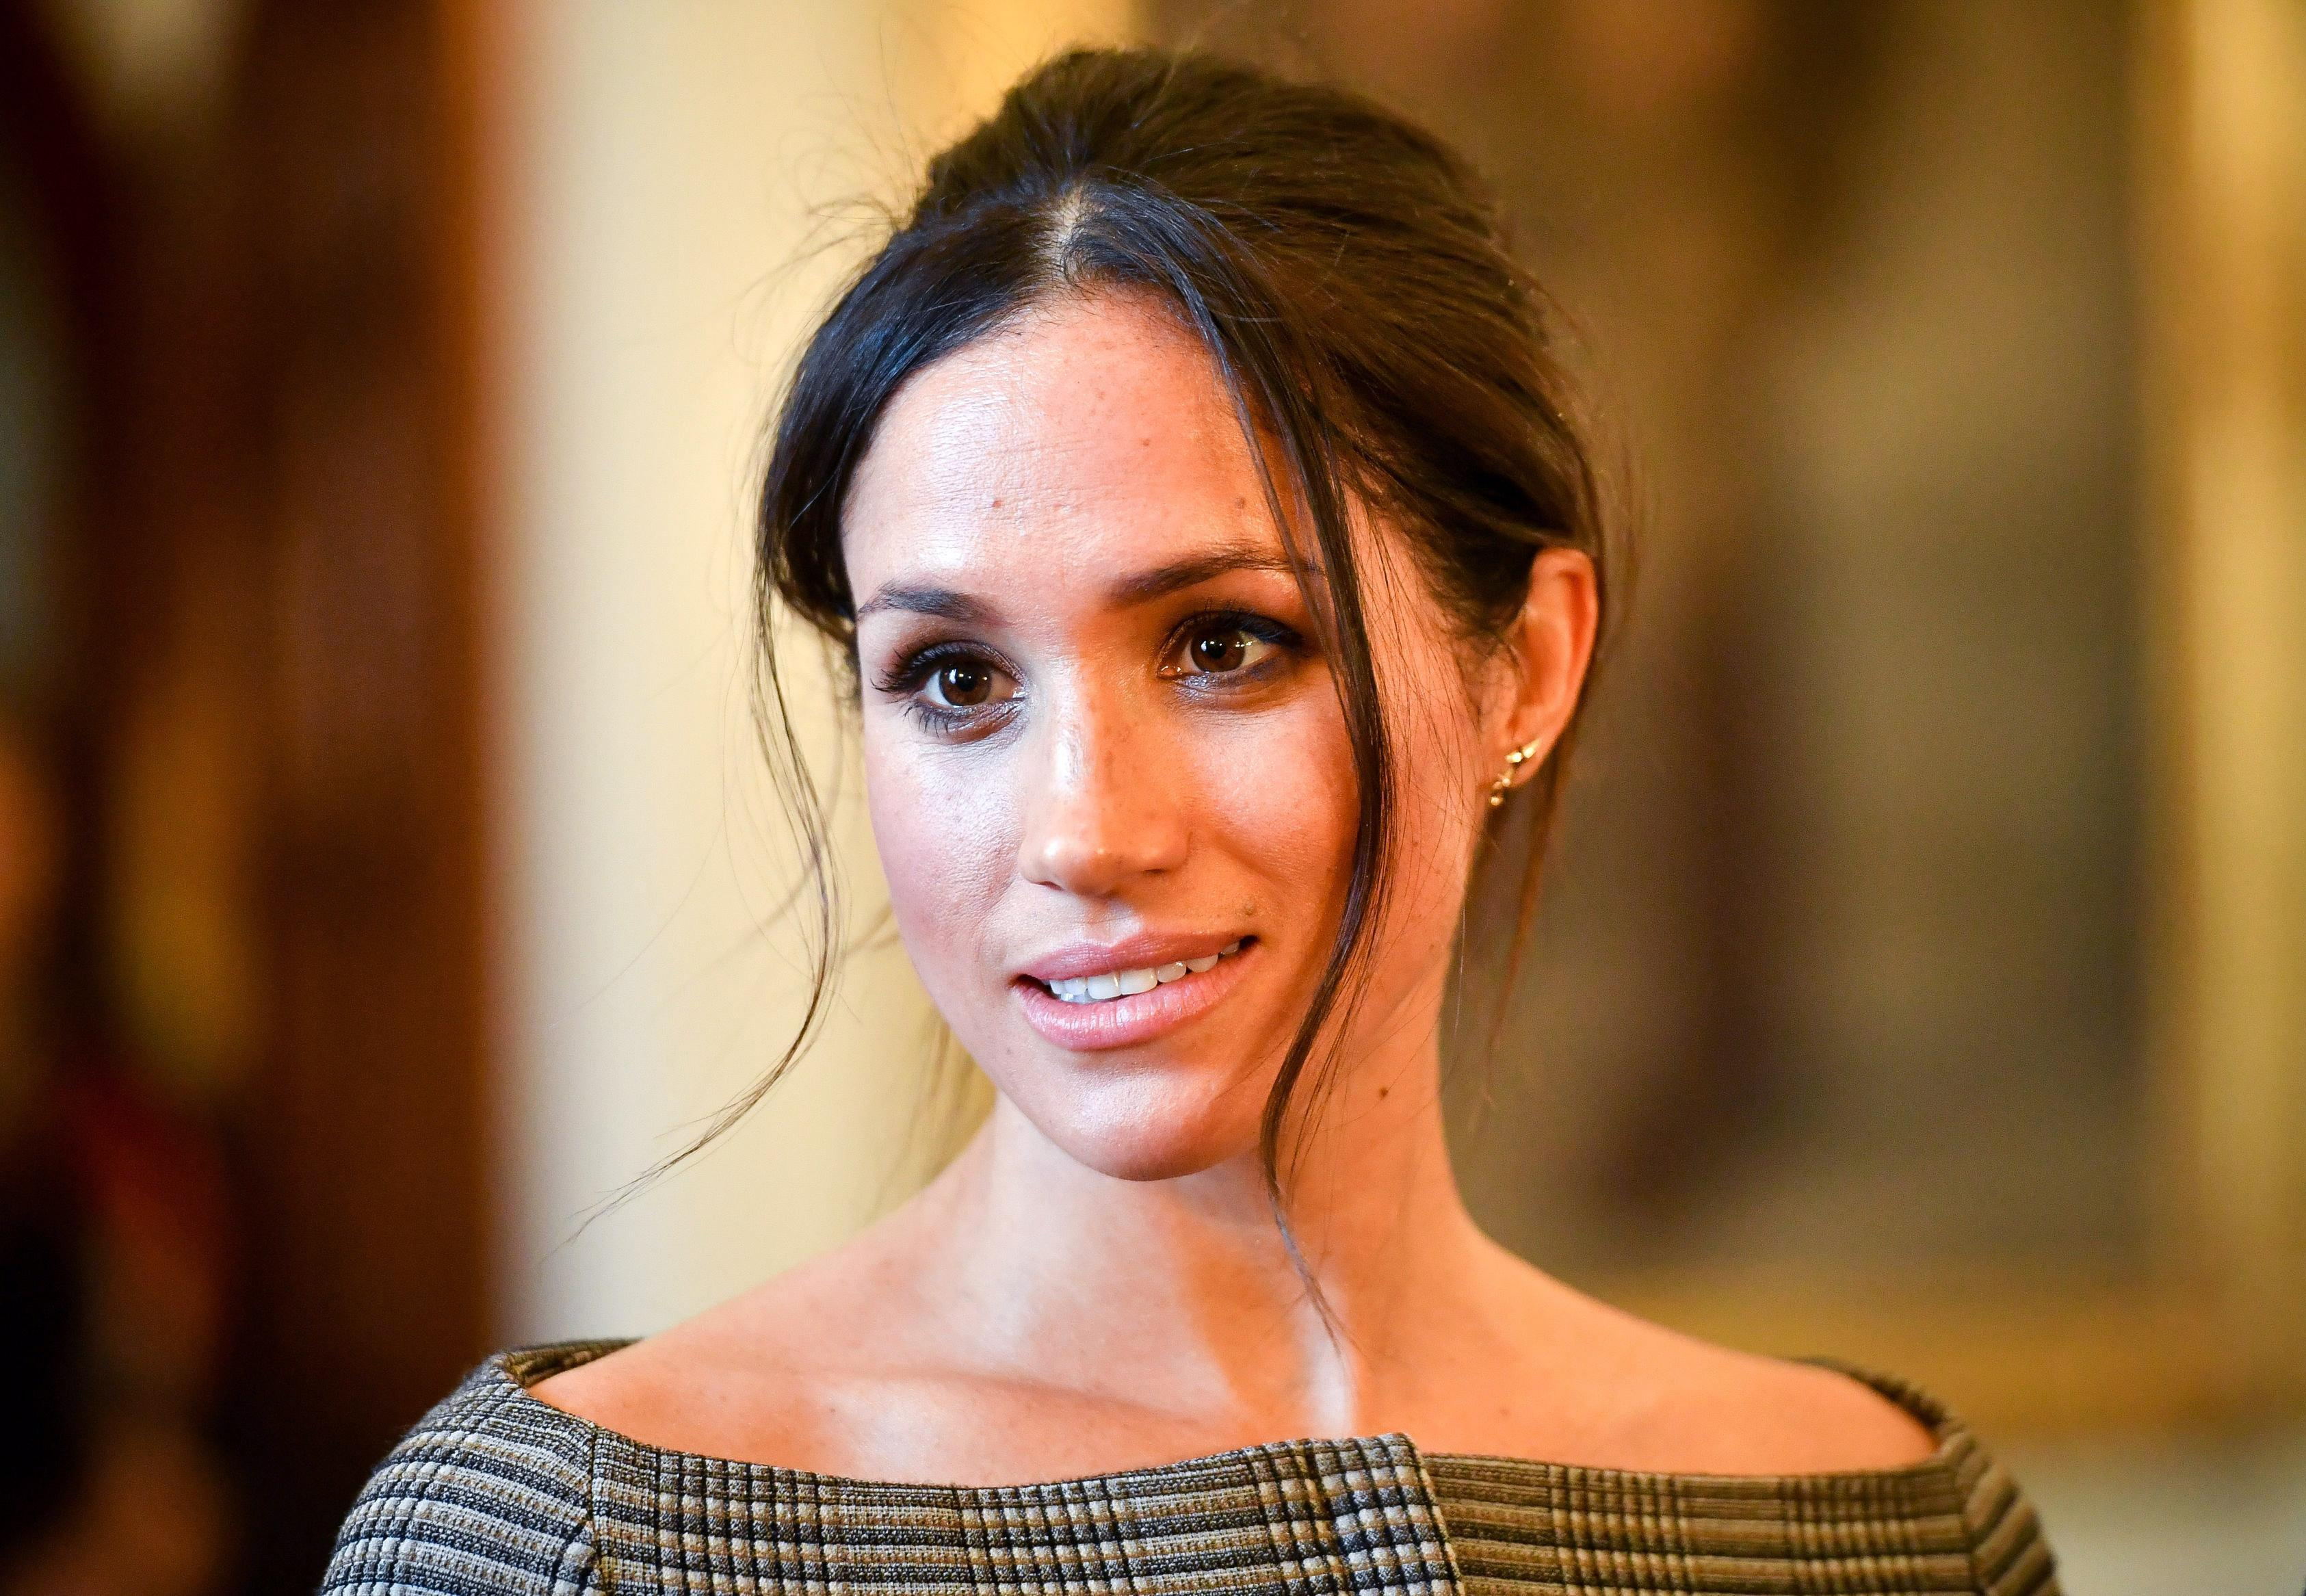 Meghan Markle Will Break Tradition and Give Her Own Wedding Speech